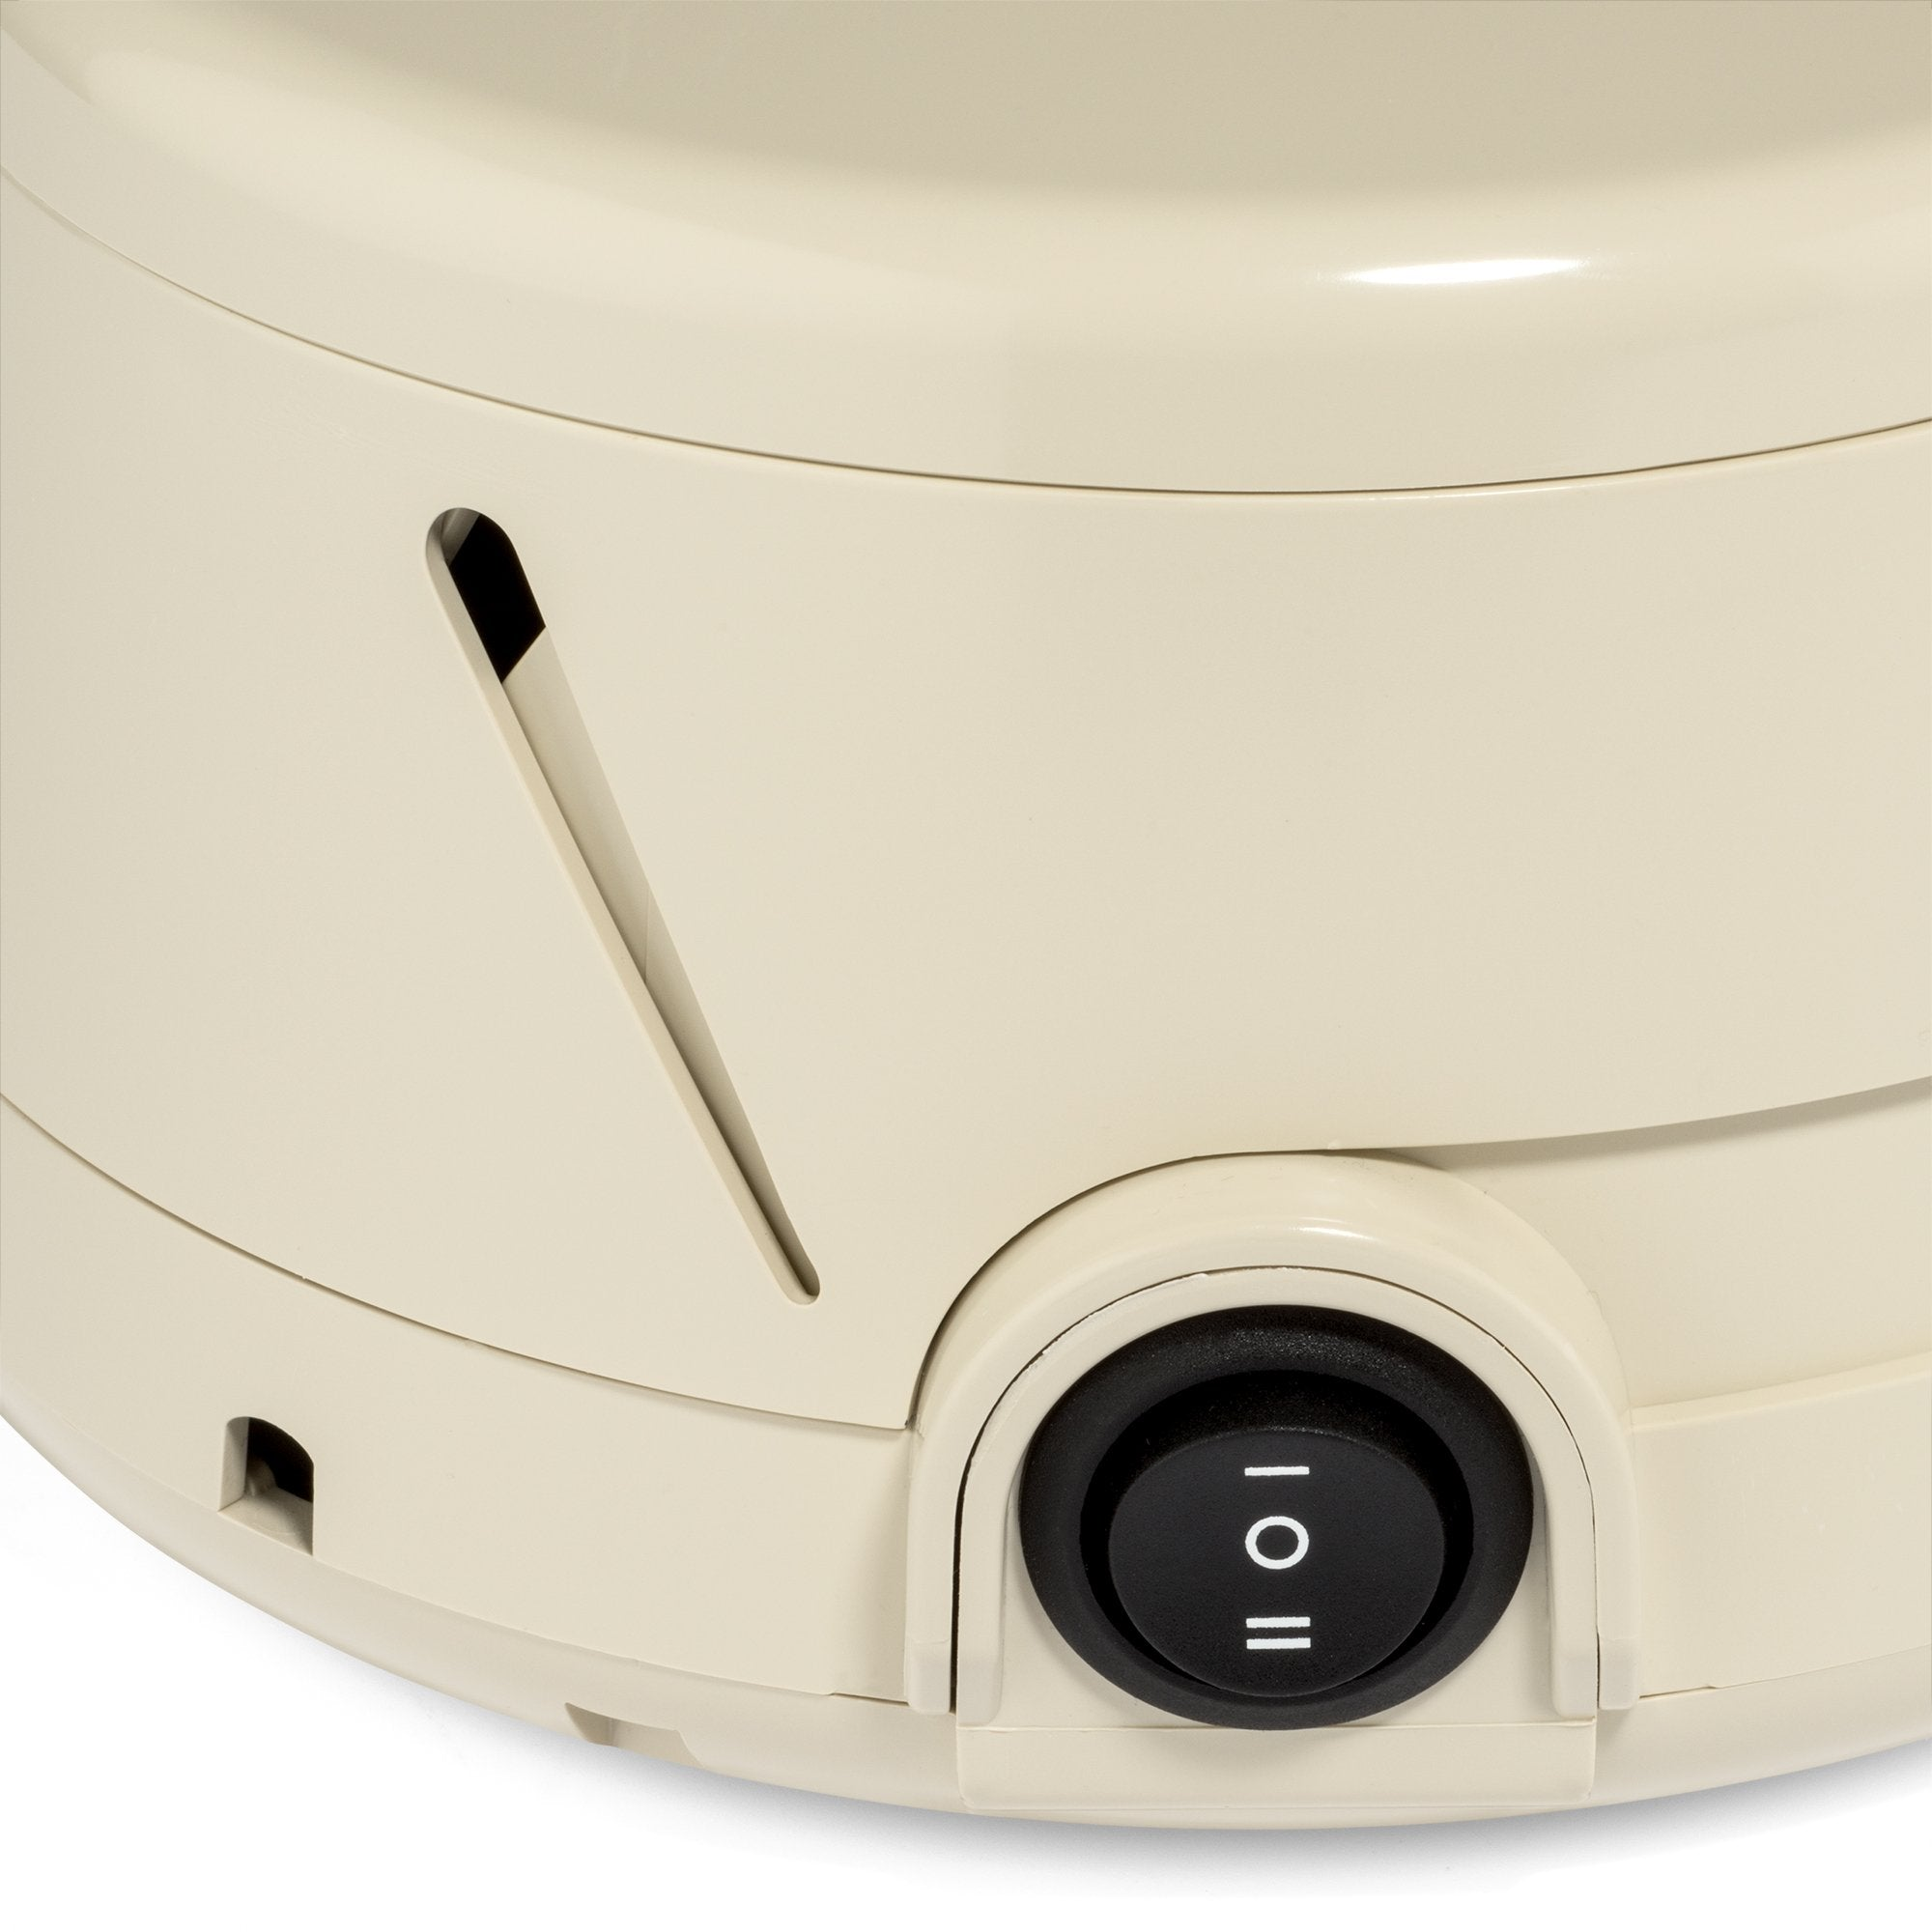 Reconditioned Dohm Classic Tan Sound Machine | Yogasleep